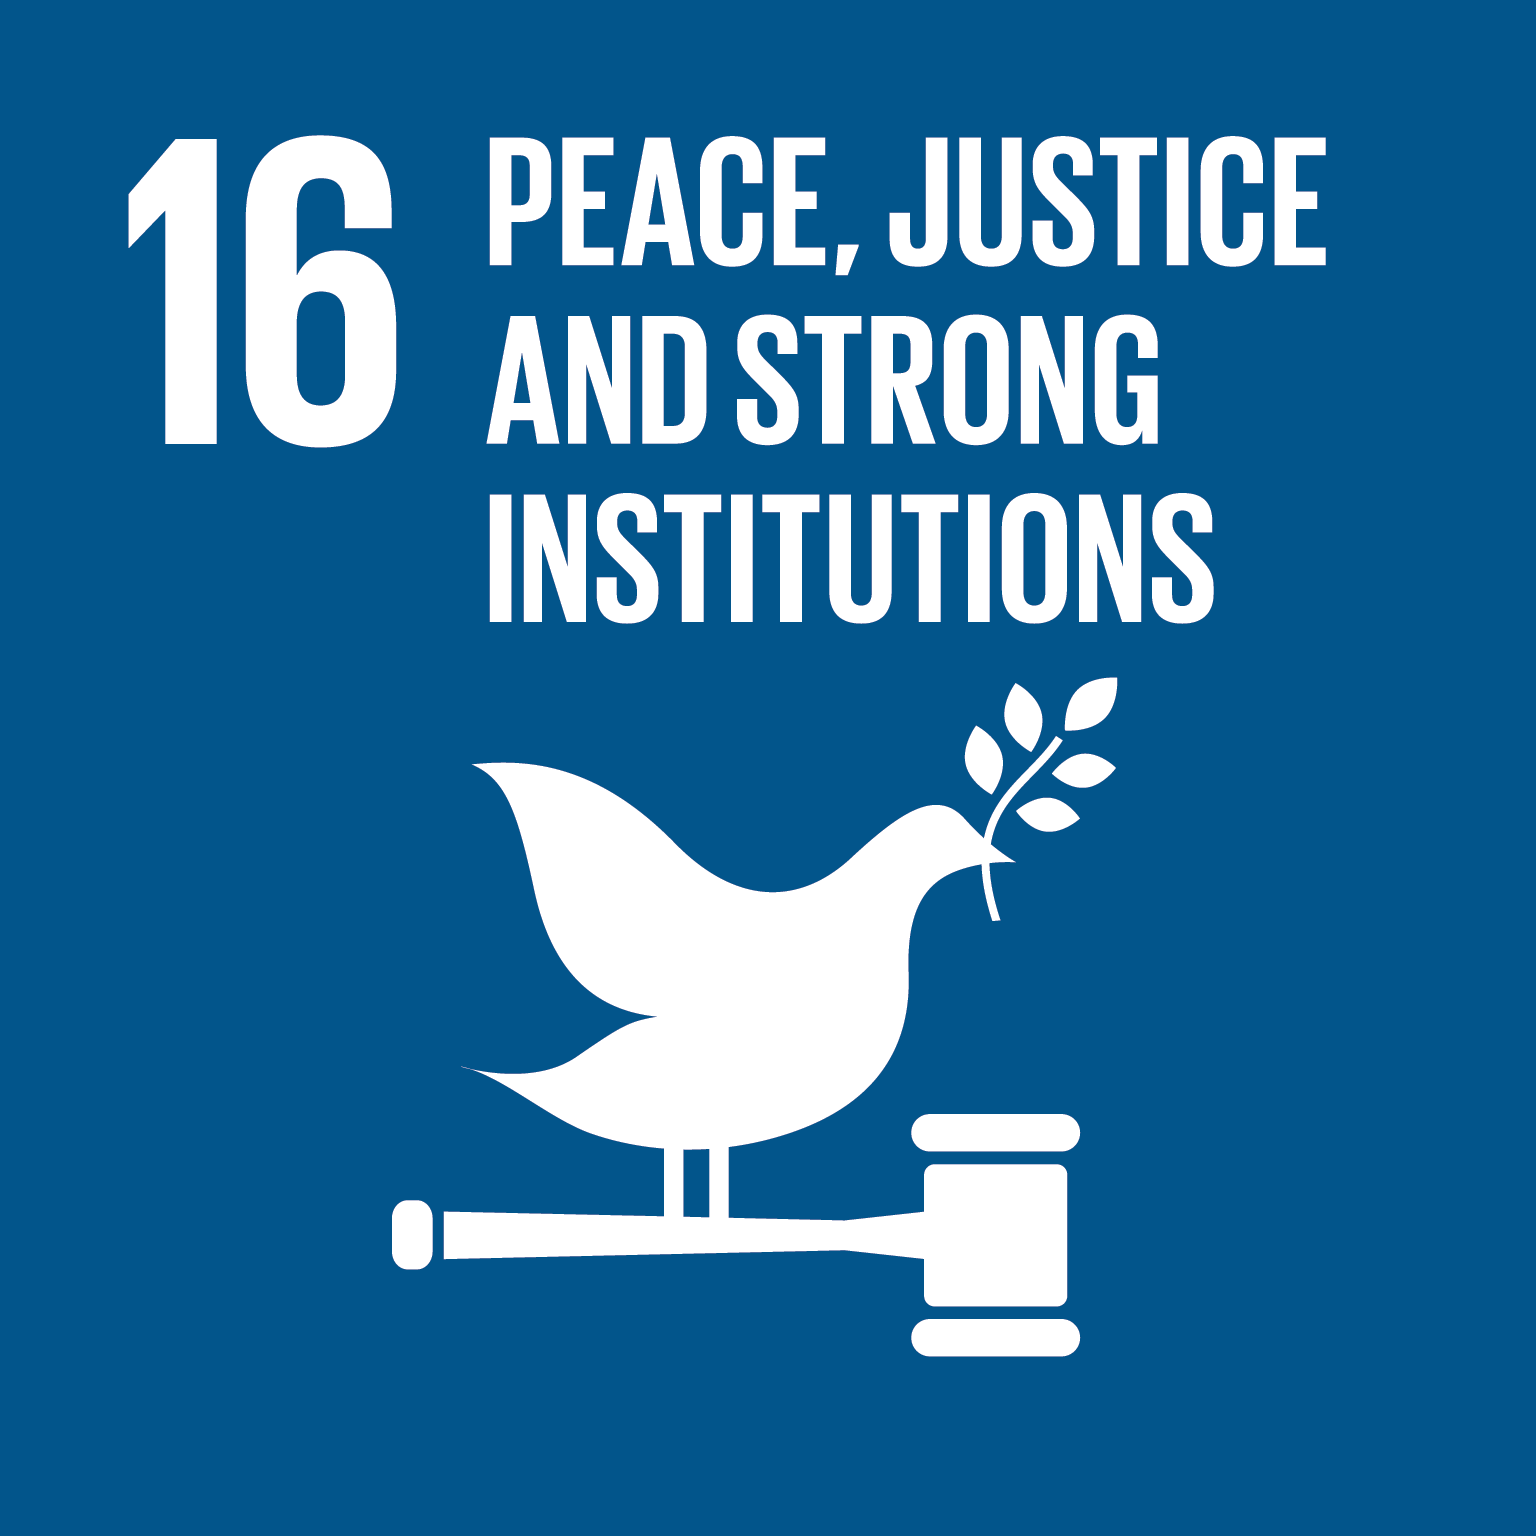 SDG 16 Posters